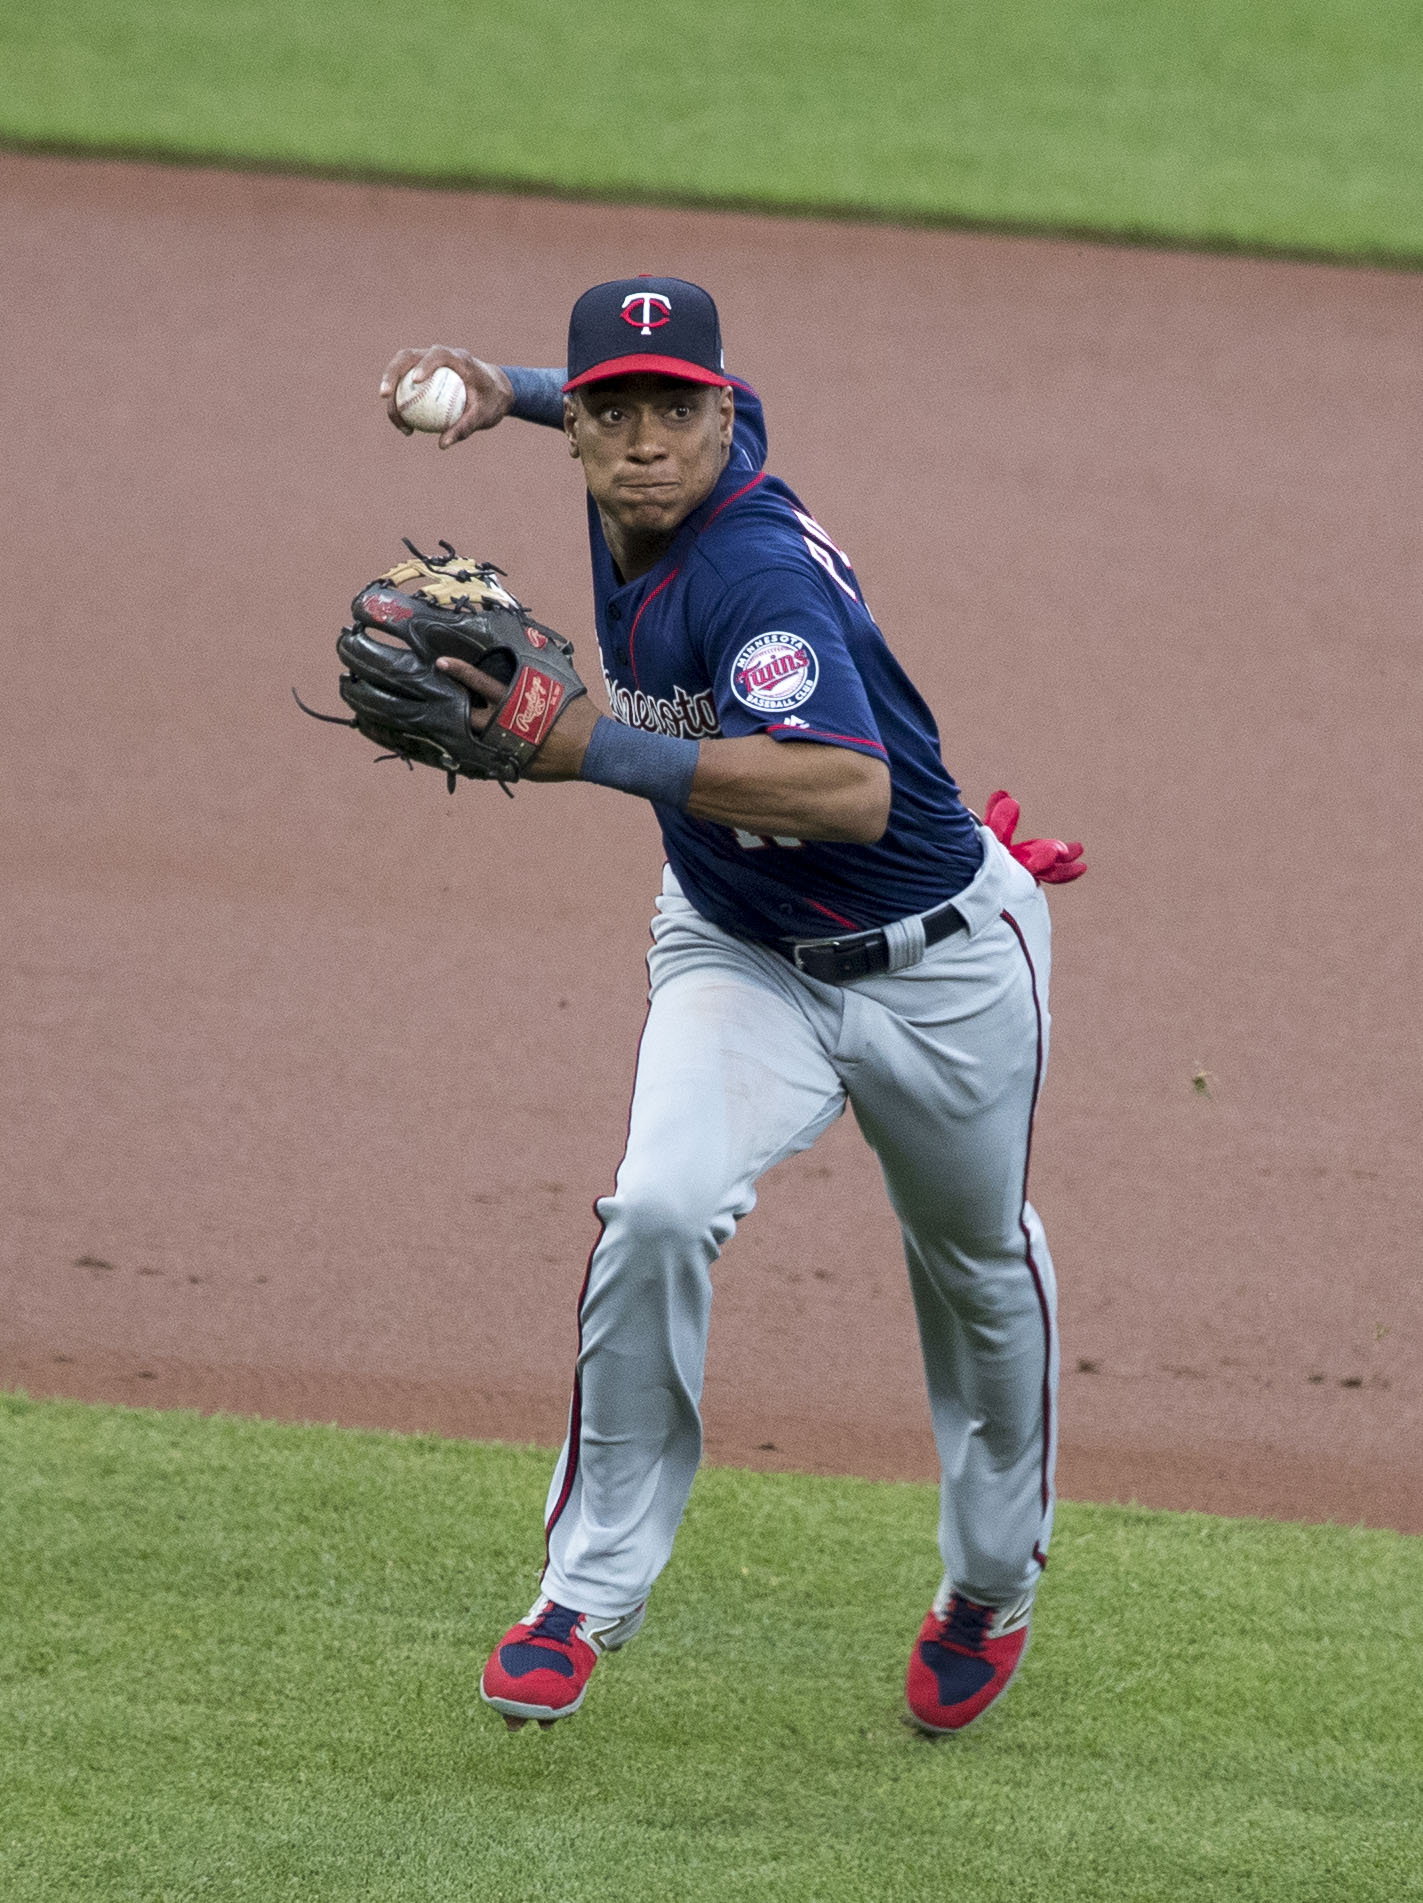 September 14, 2019 -- The Twins beat the Indians on the road, 9 to 5. The Twins starting pitcher was Lewis Thorpe and top hitter was Jorge Polanco.